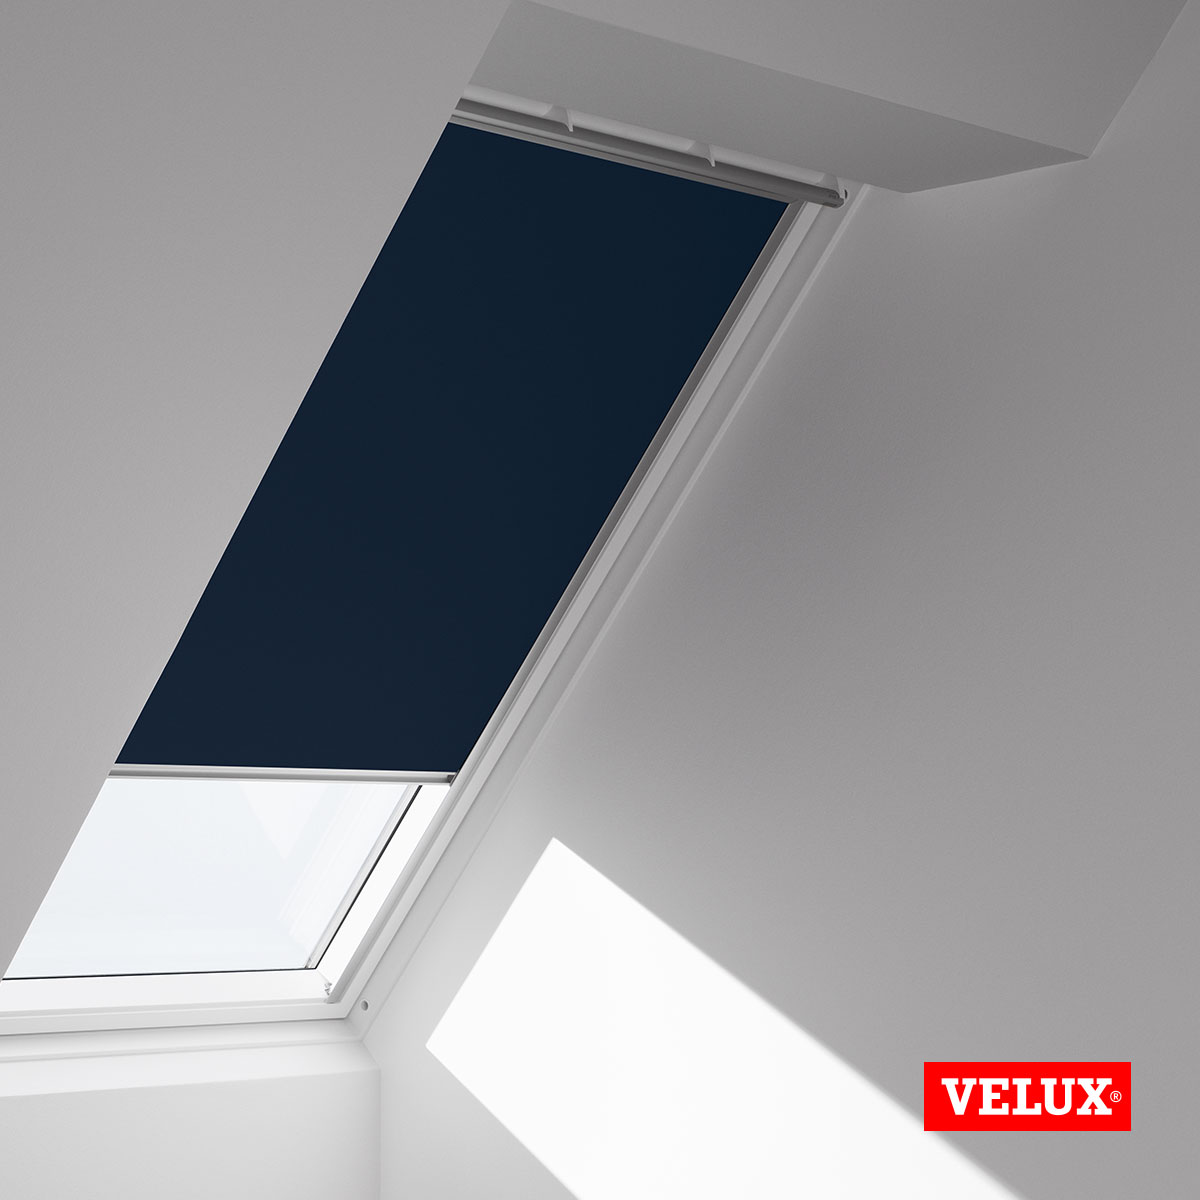 Genuine velux blackout blinds match your velux skylight for Velux glass